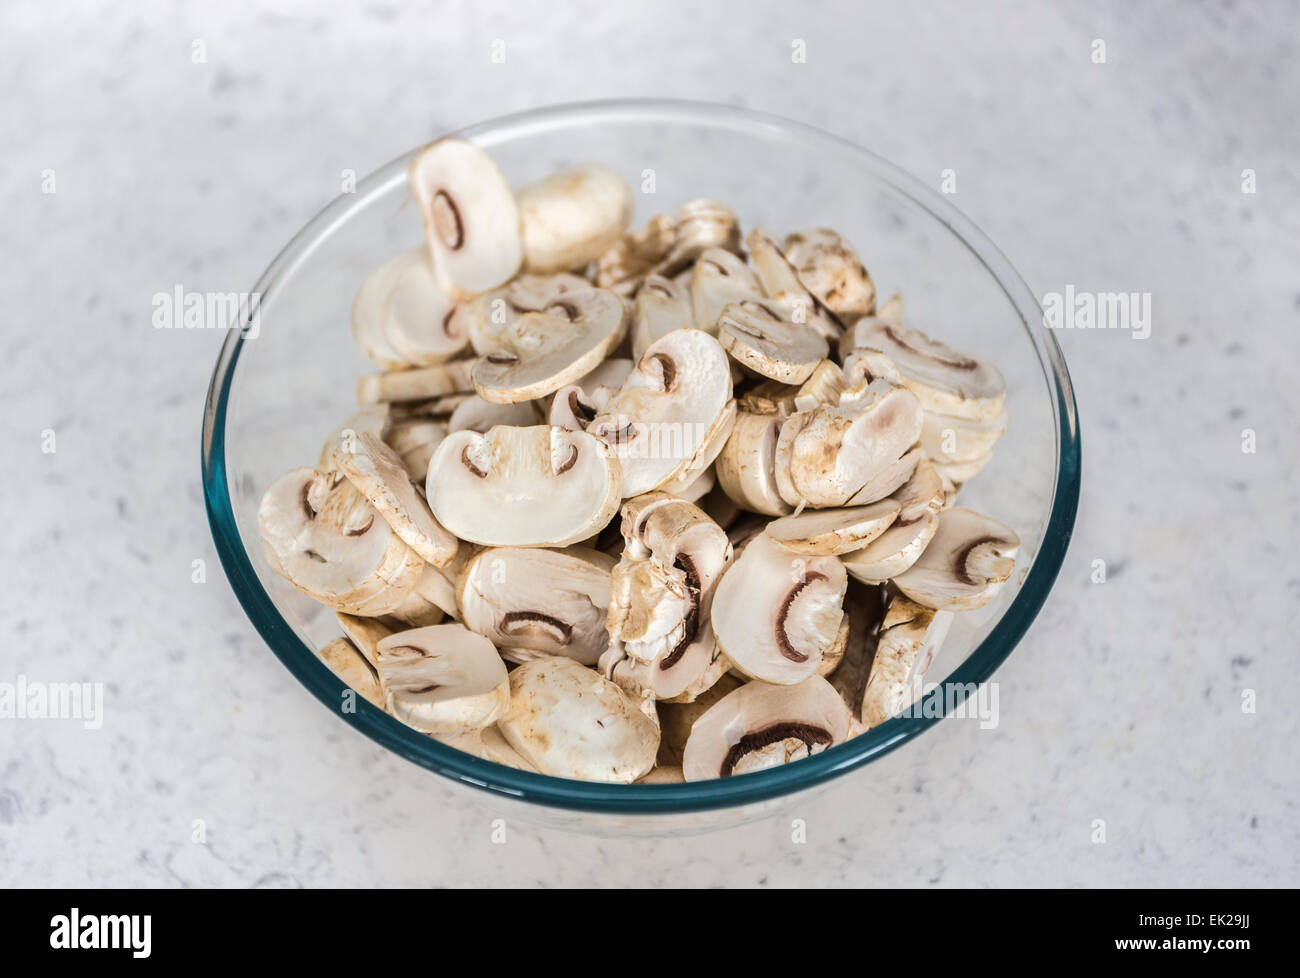 Home cookery ingredients - a glass or Pyrex bowl of raw, uncooked prepared sliced button mushrooms ready for use - Stock Image